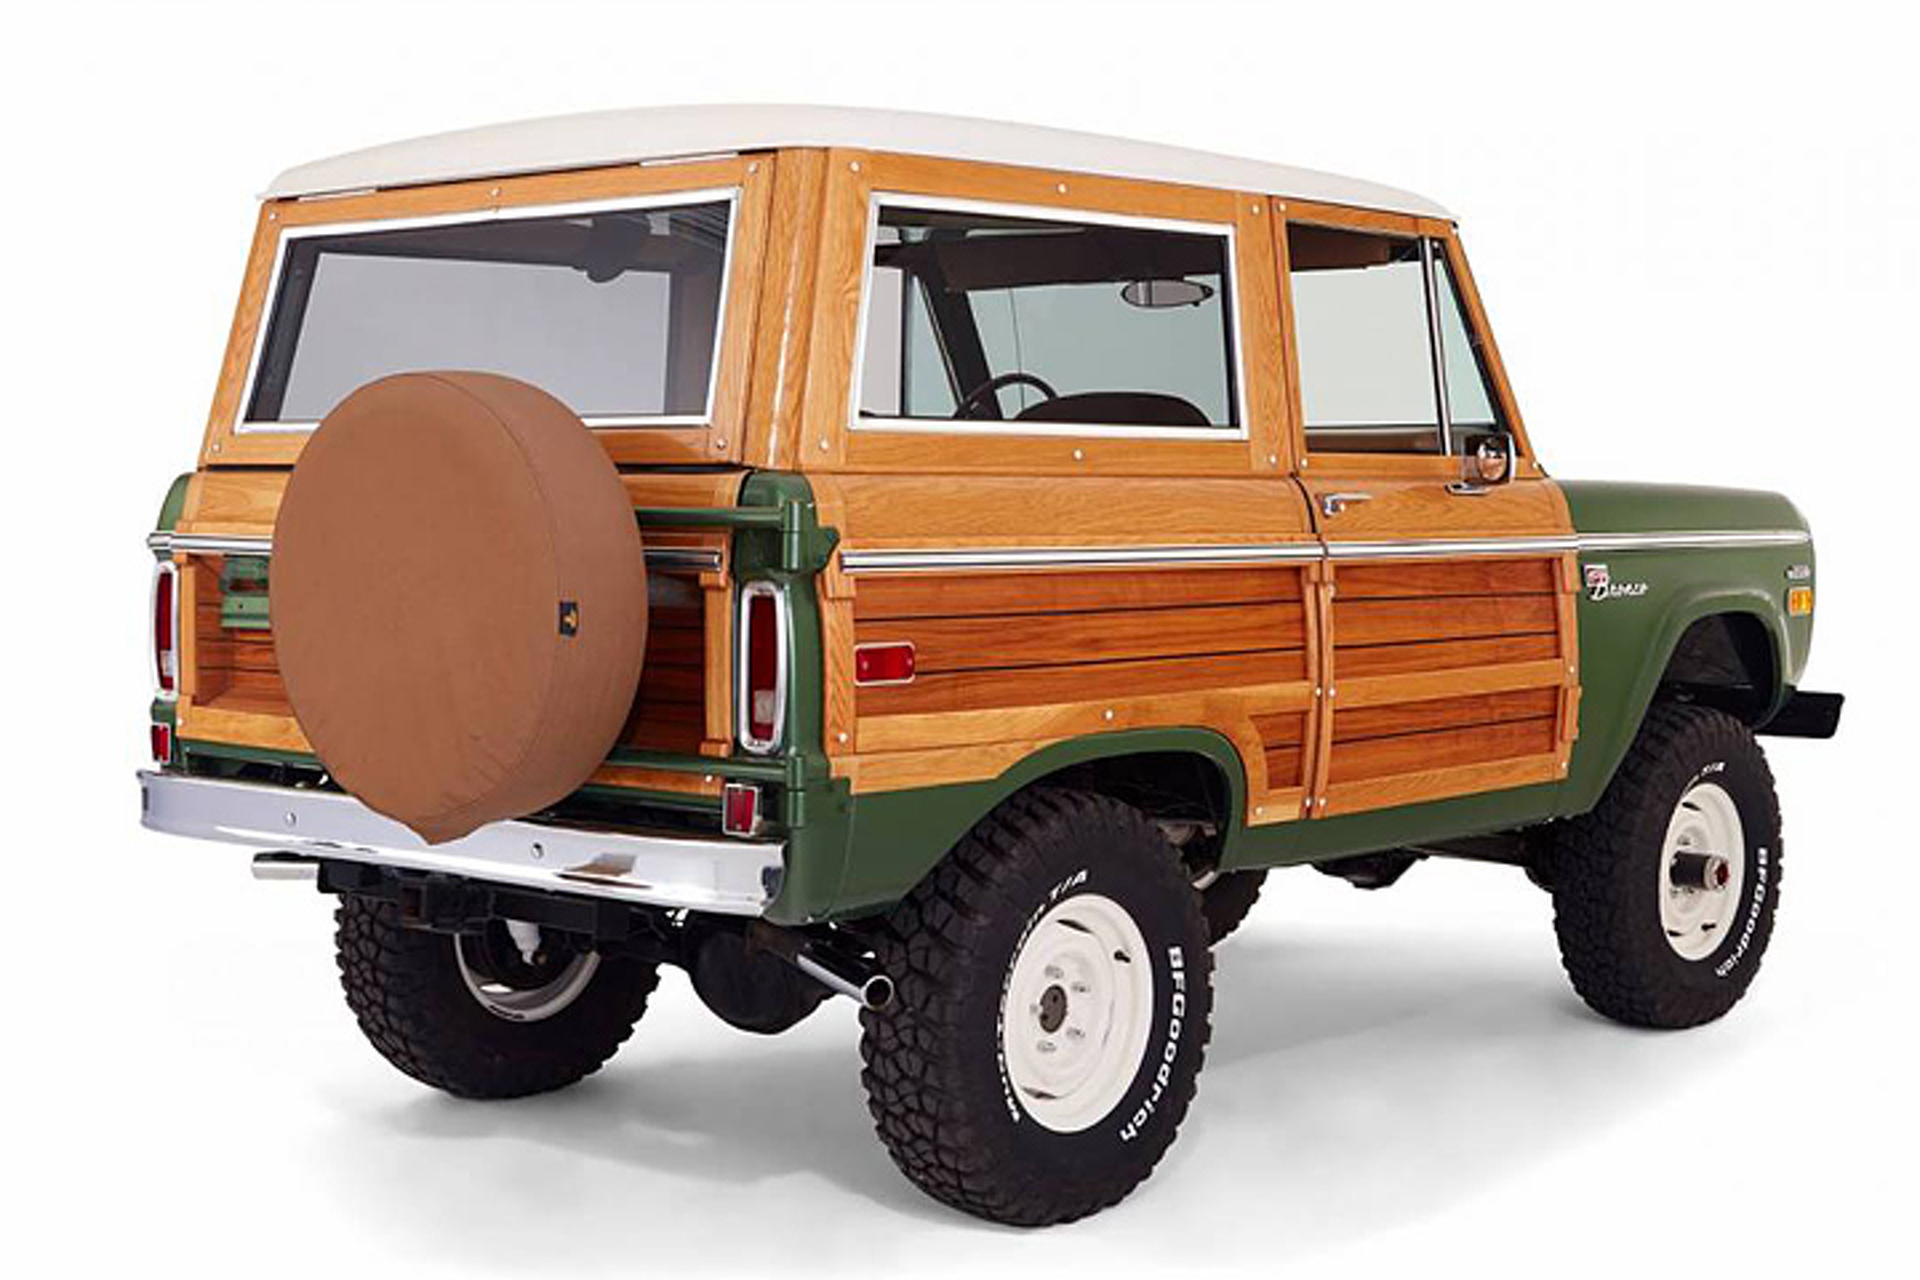 Custom 'Woodie' Ford Bronco is Truly One of a Kind